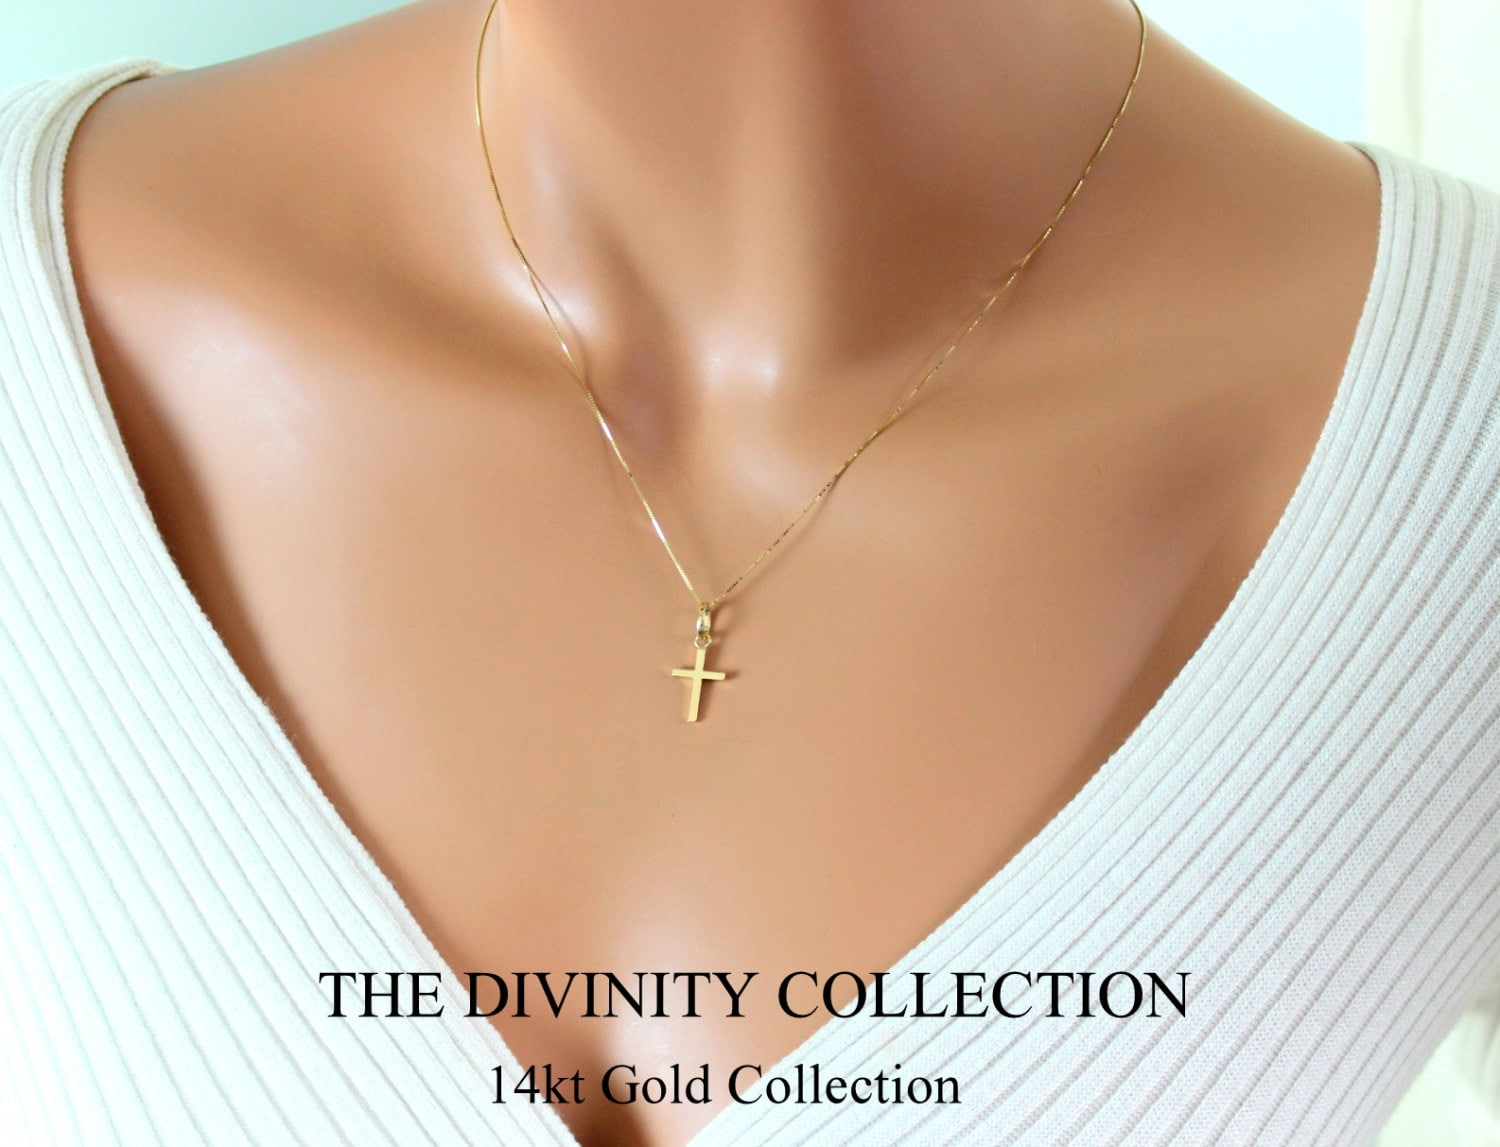 Gold cross necklace women images gold cross necklace women images 14kt solid gold cross necklace women simple small charm jpg aloadofball Images